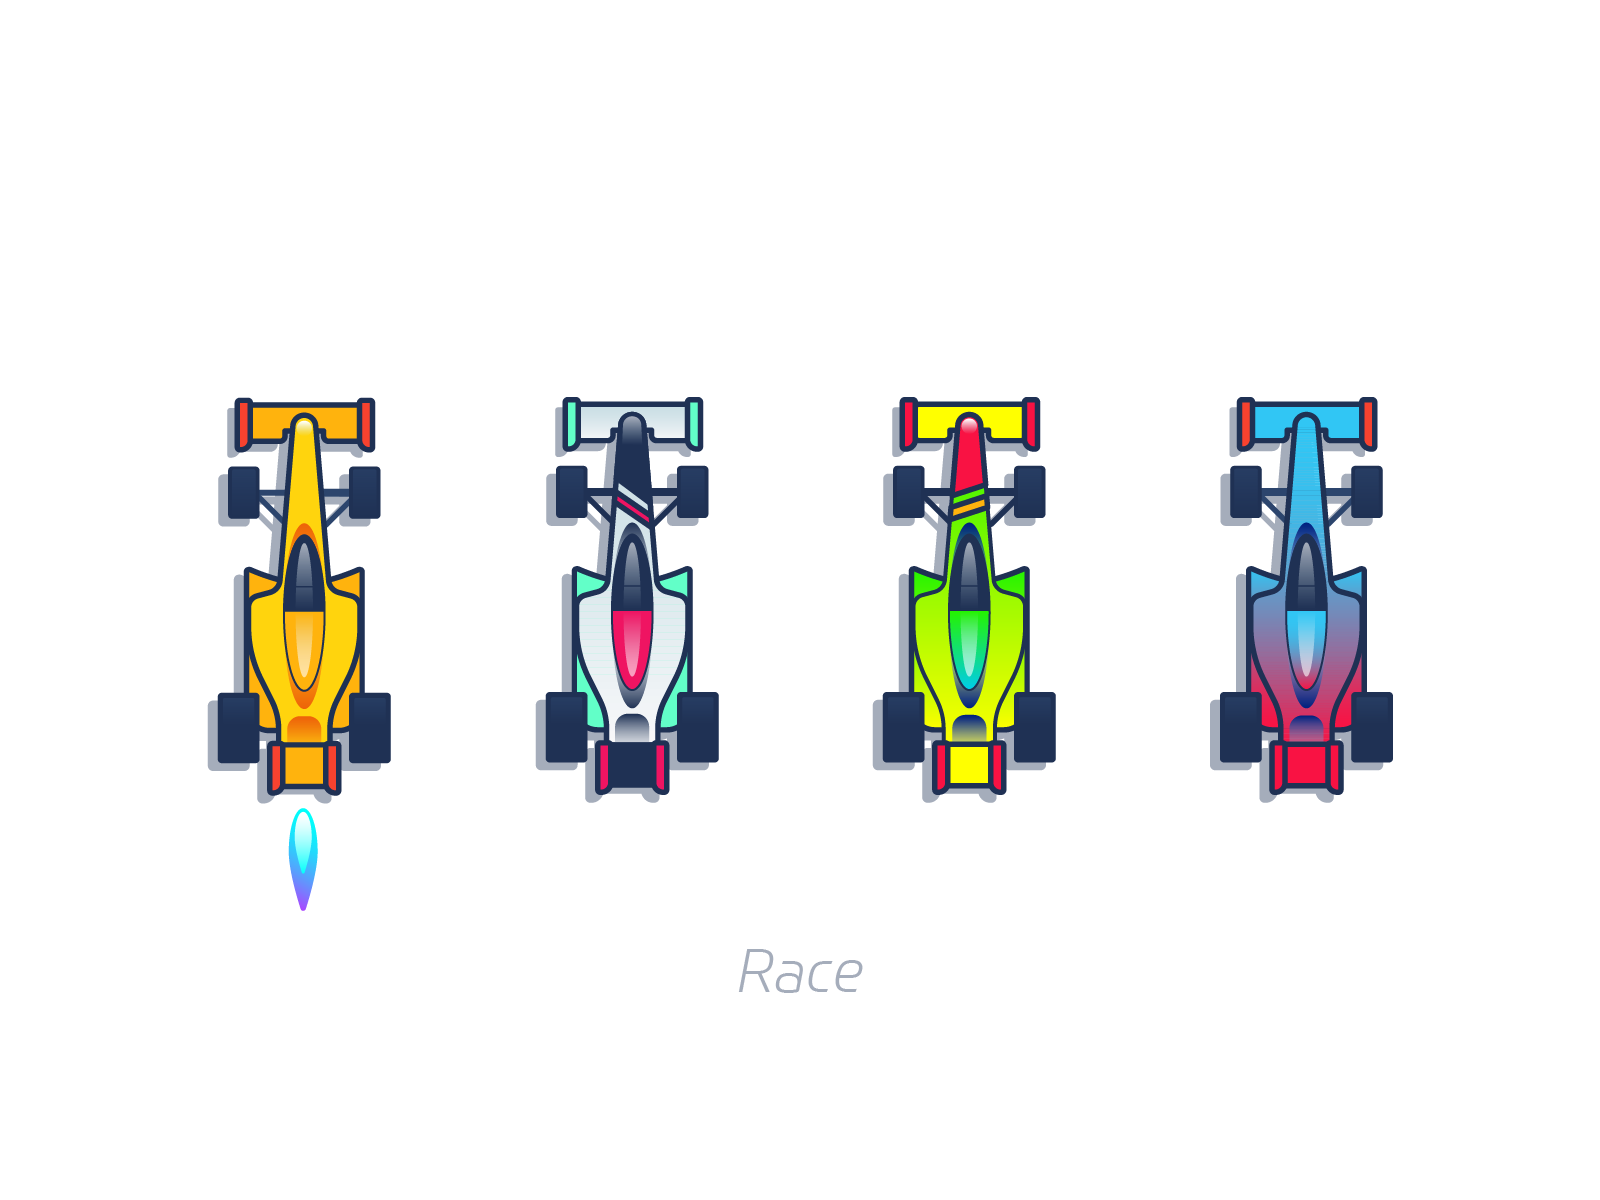 Race cars graphic design for mobile game